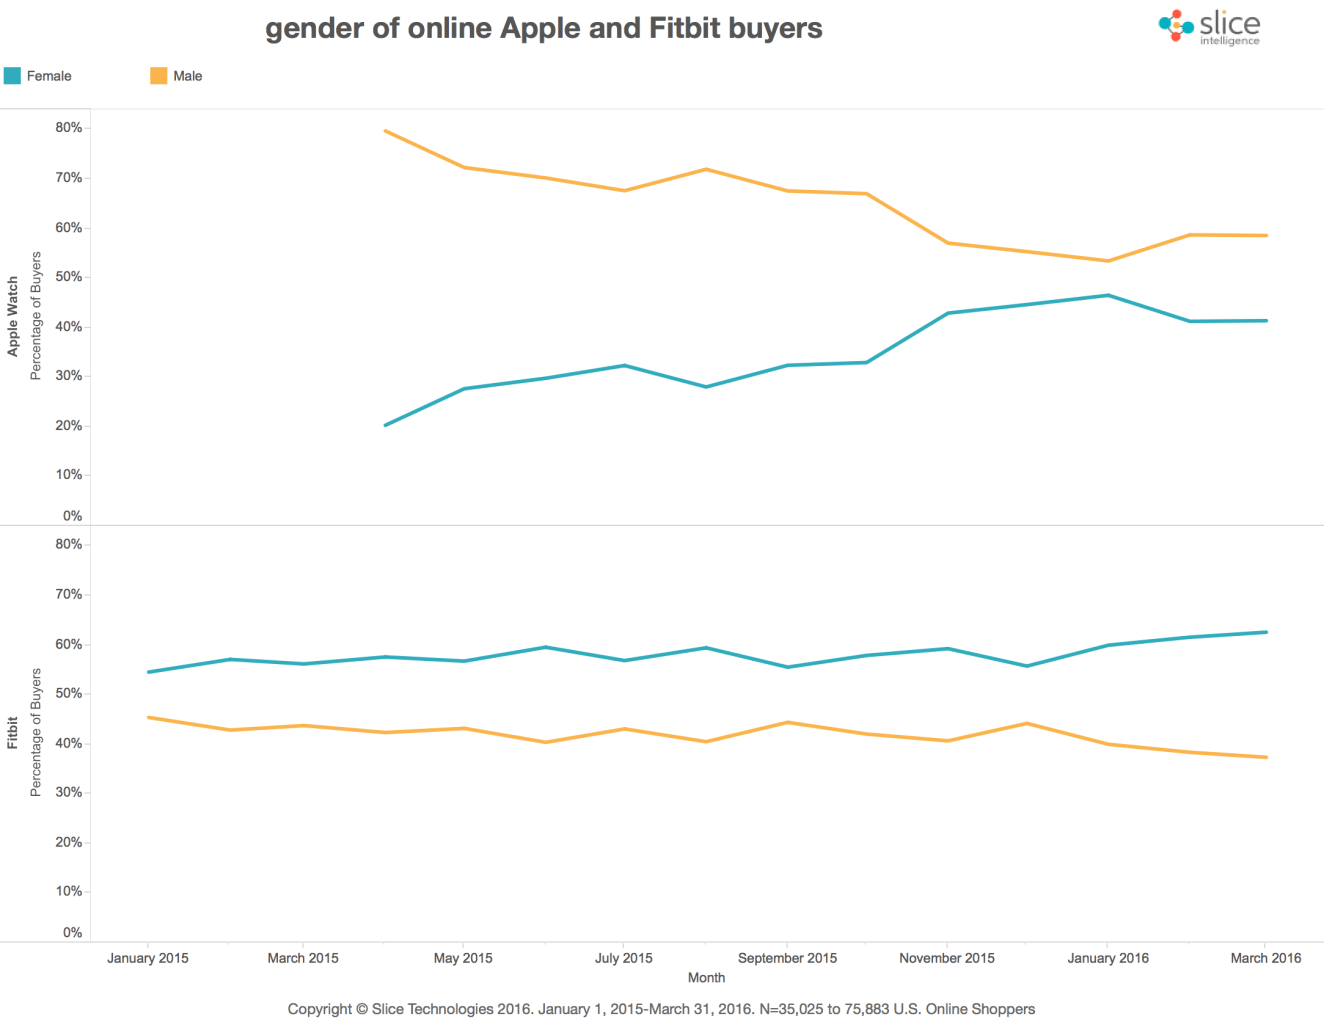 slice-gender-of-online-apple-and-fitbit-buyers